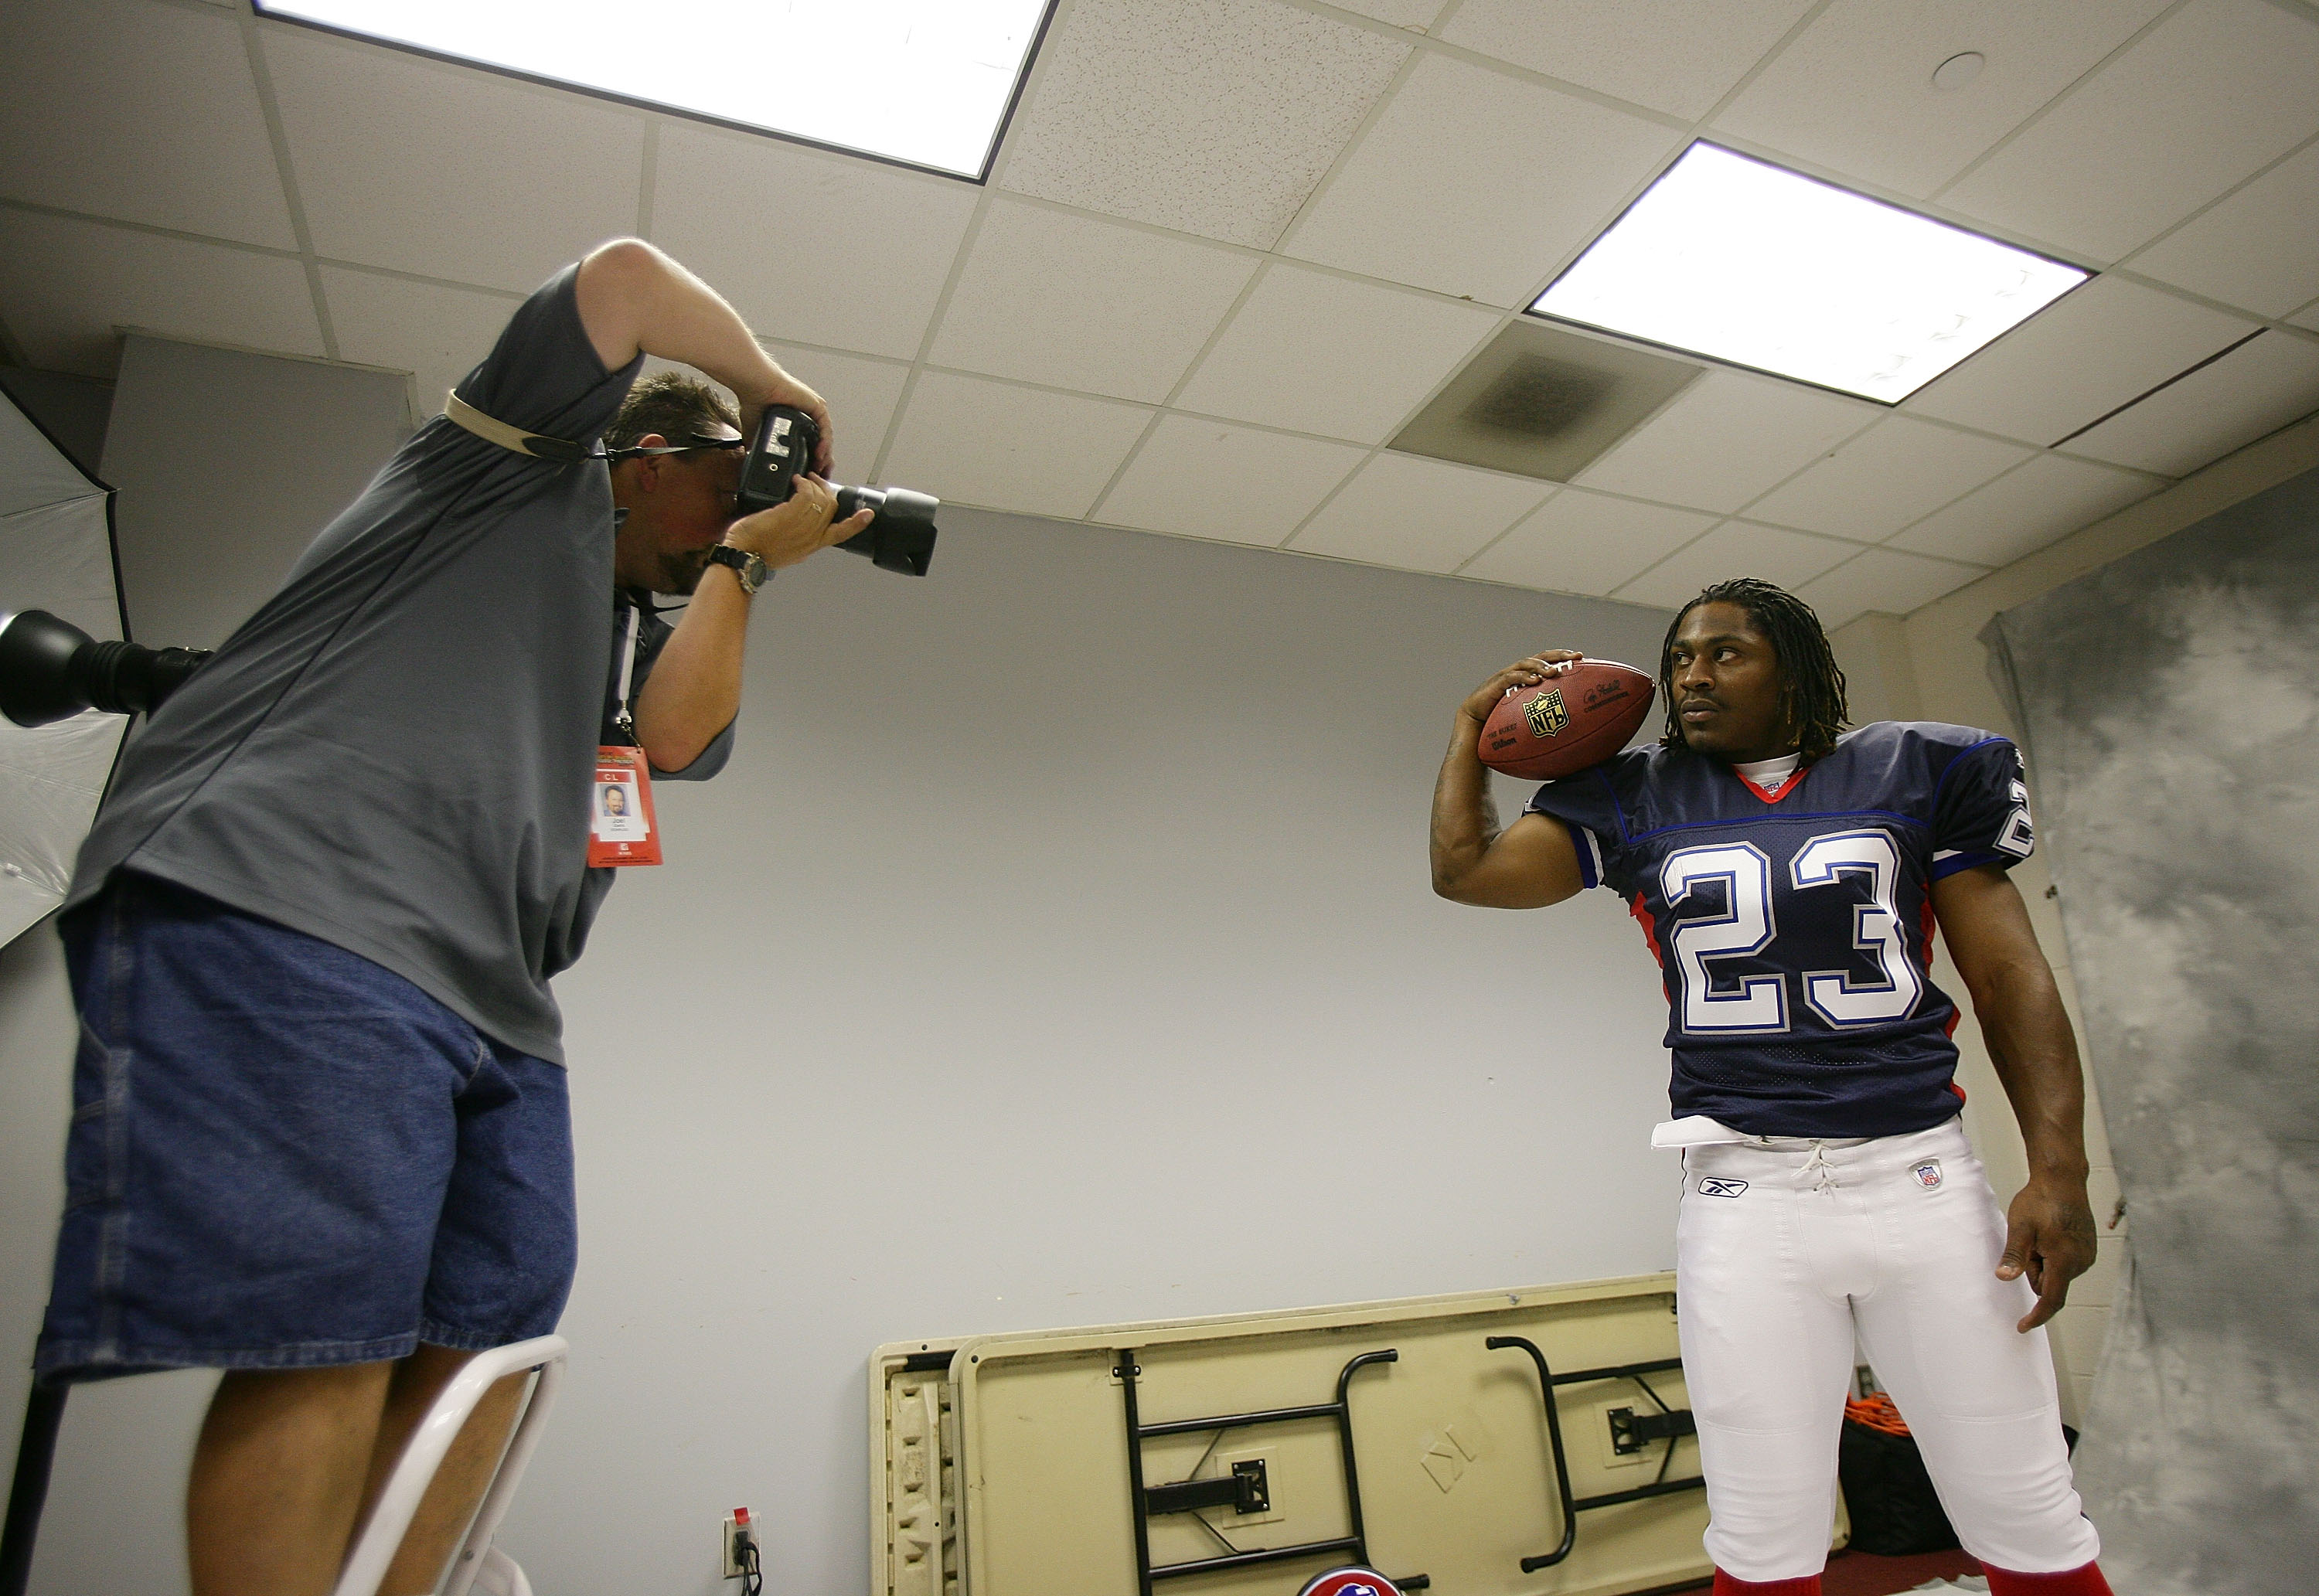 LOS ANGELES, CA - MAY 19:  Marshawn Lynch #23 of the Buffalo Bills poses for a photographer at the 2007 NFL Players Rookie Premiere on May 19, 2007 at the Los Angeles Memorial Coliseum in Los Angeles, California. (Photo by Nick Laham/Getty Images for PLAY